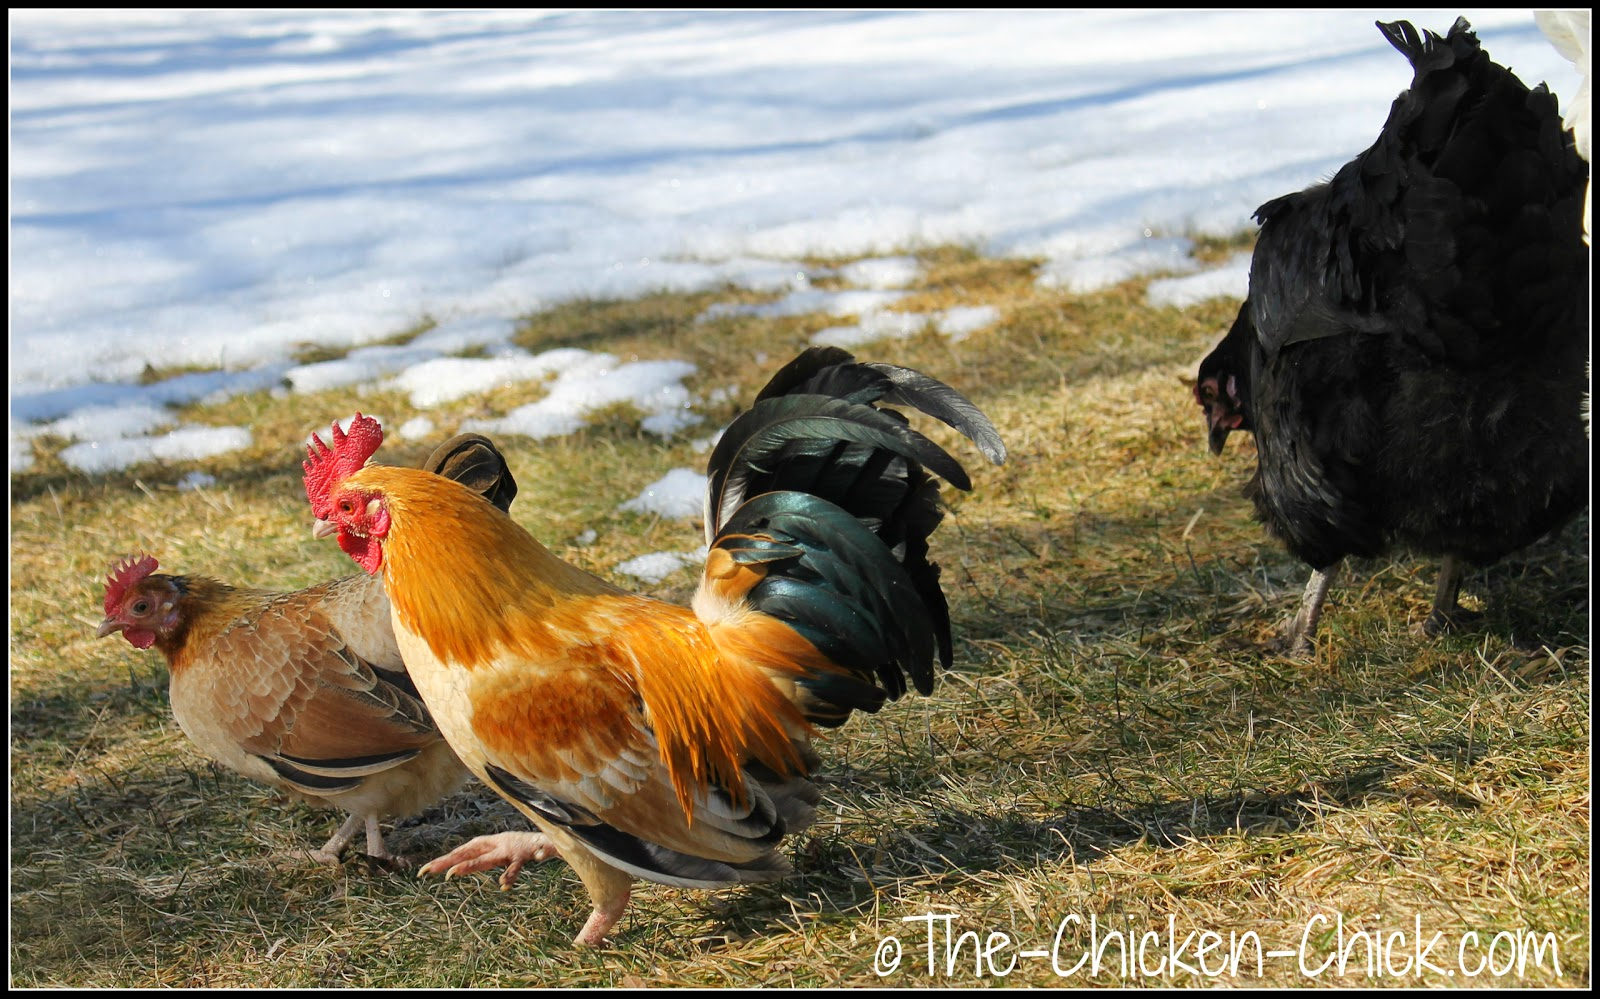 Keeping chickens in crowding conditions is to be avoided due to the dangers it poses. Chickens explore their world with their beaks and the closer they are in proximity to one another, the more likely they are to explore one another by pecking.